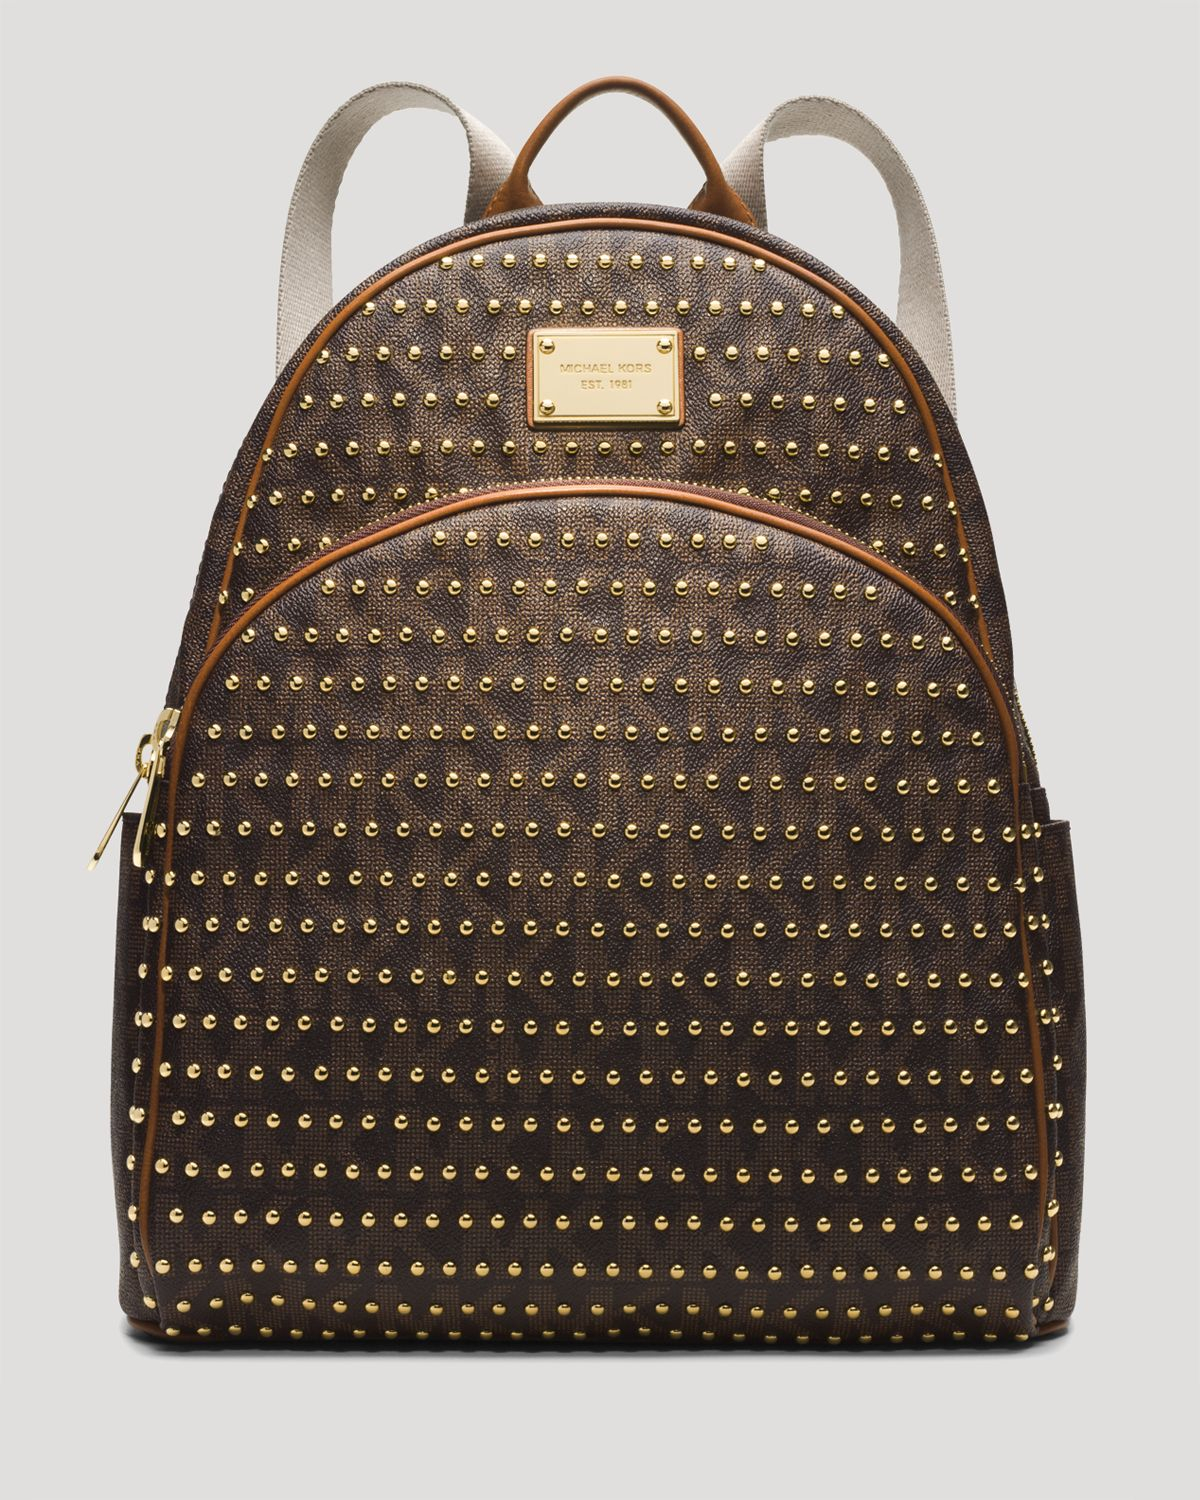 b4cb5949904a ... handbags accessories macys ed5f3 bf2a1  coupon code for lyst michael  michael kors backpack jet set item large studded in bb938 8e4cc